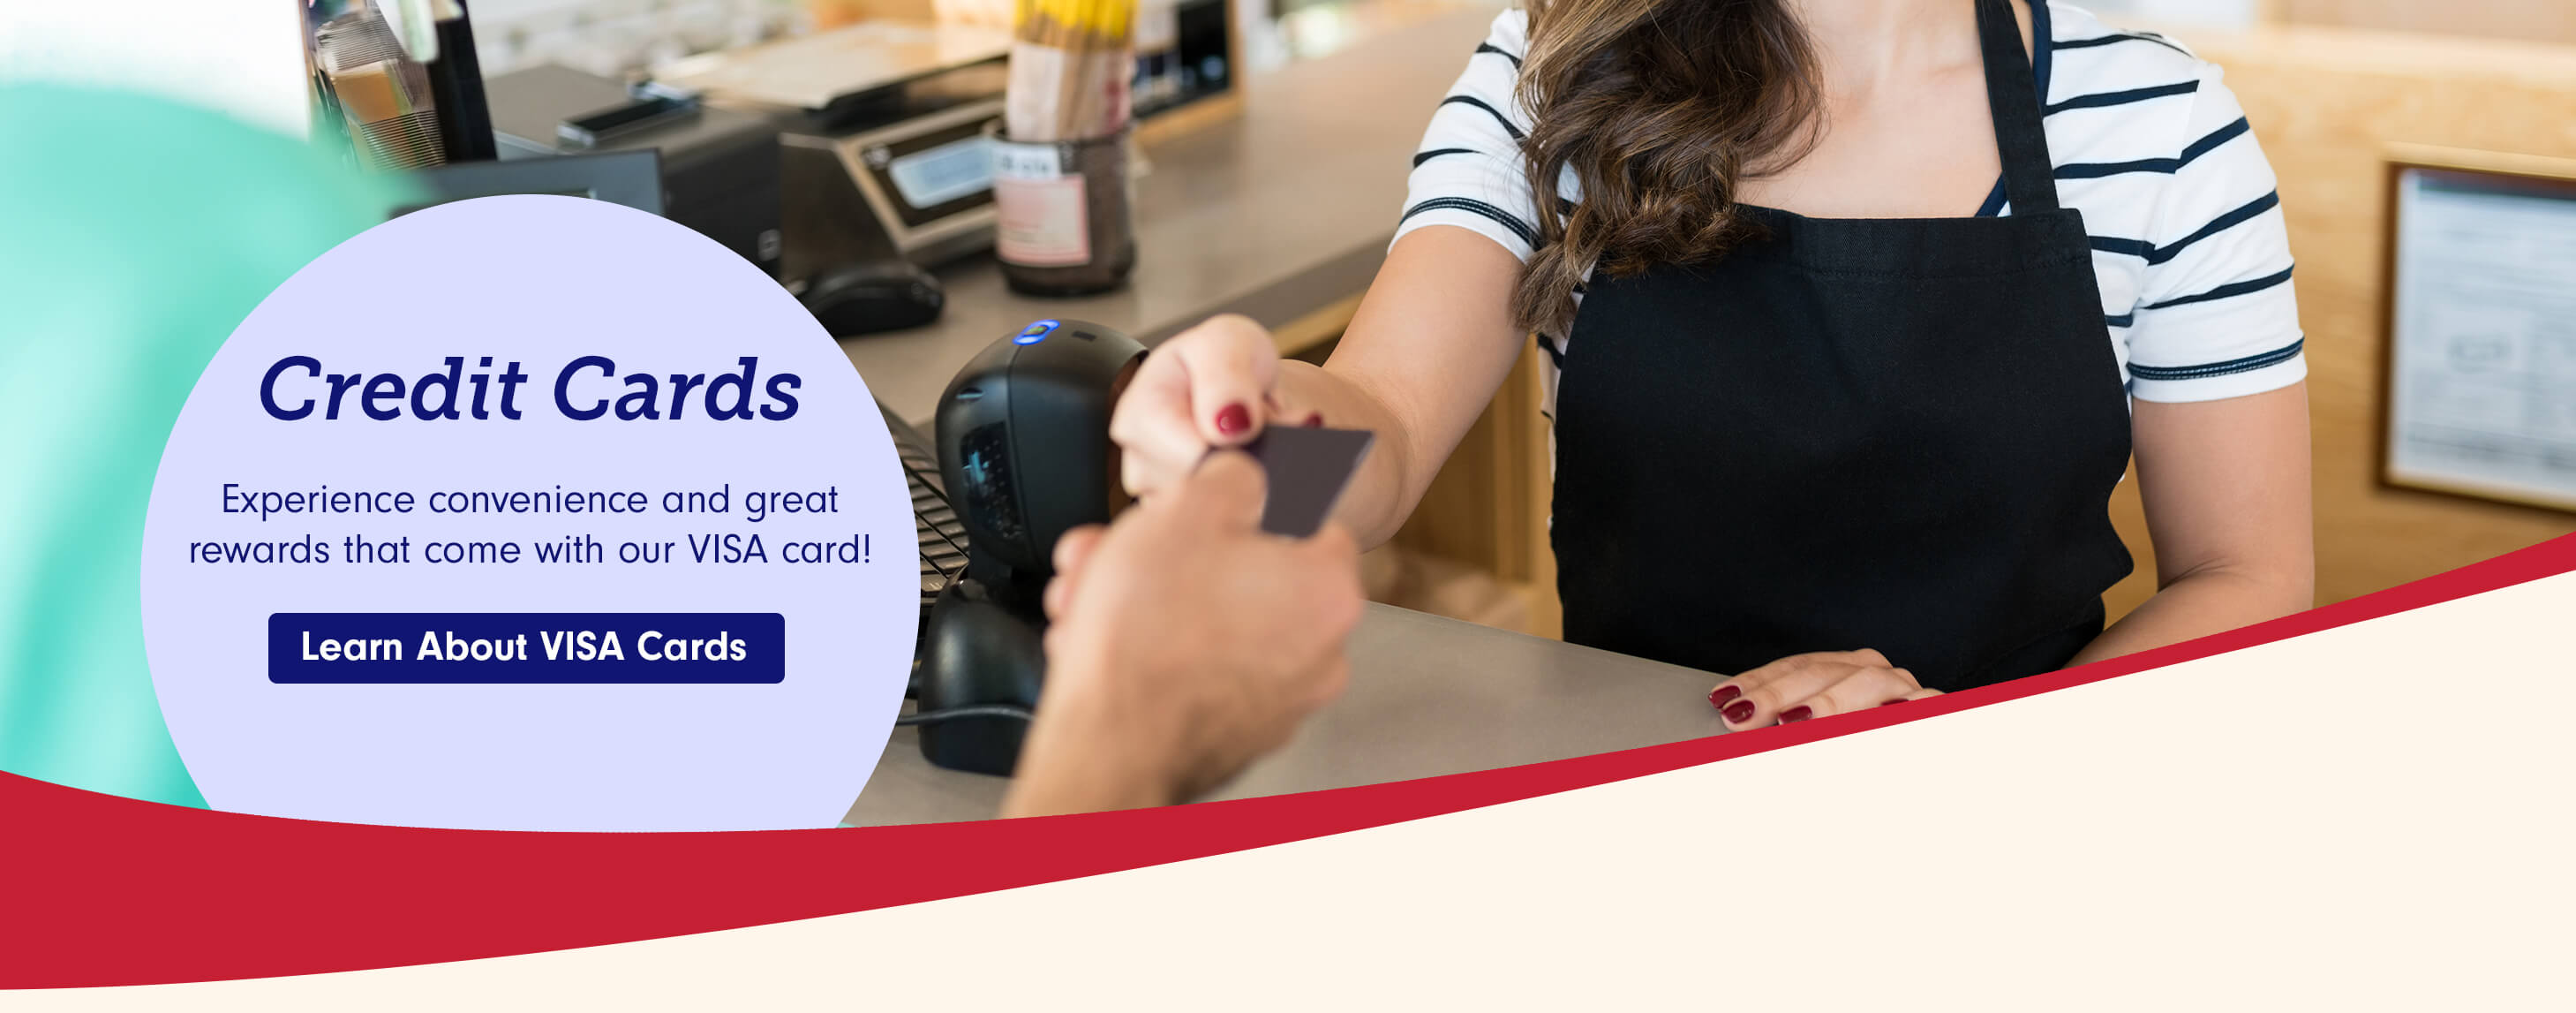 Credit Cards  Experience convenience and great rewards that come with our VISA card! Learn about VISA Cards